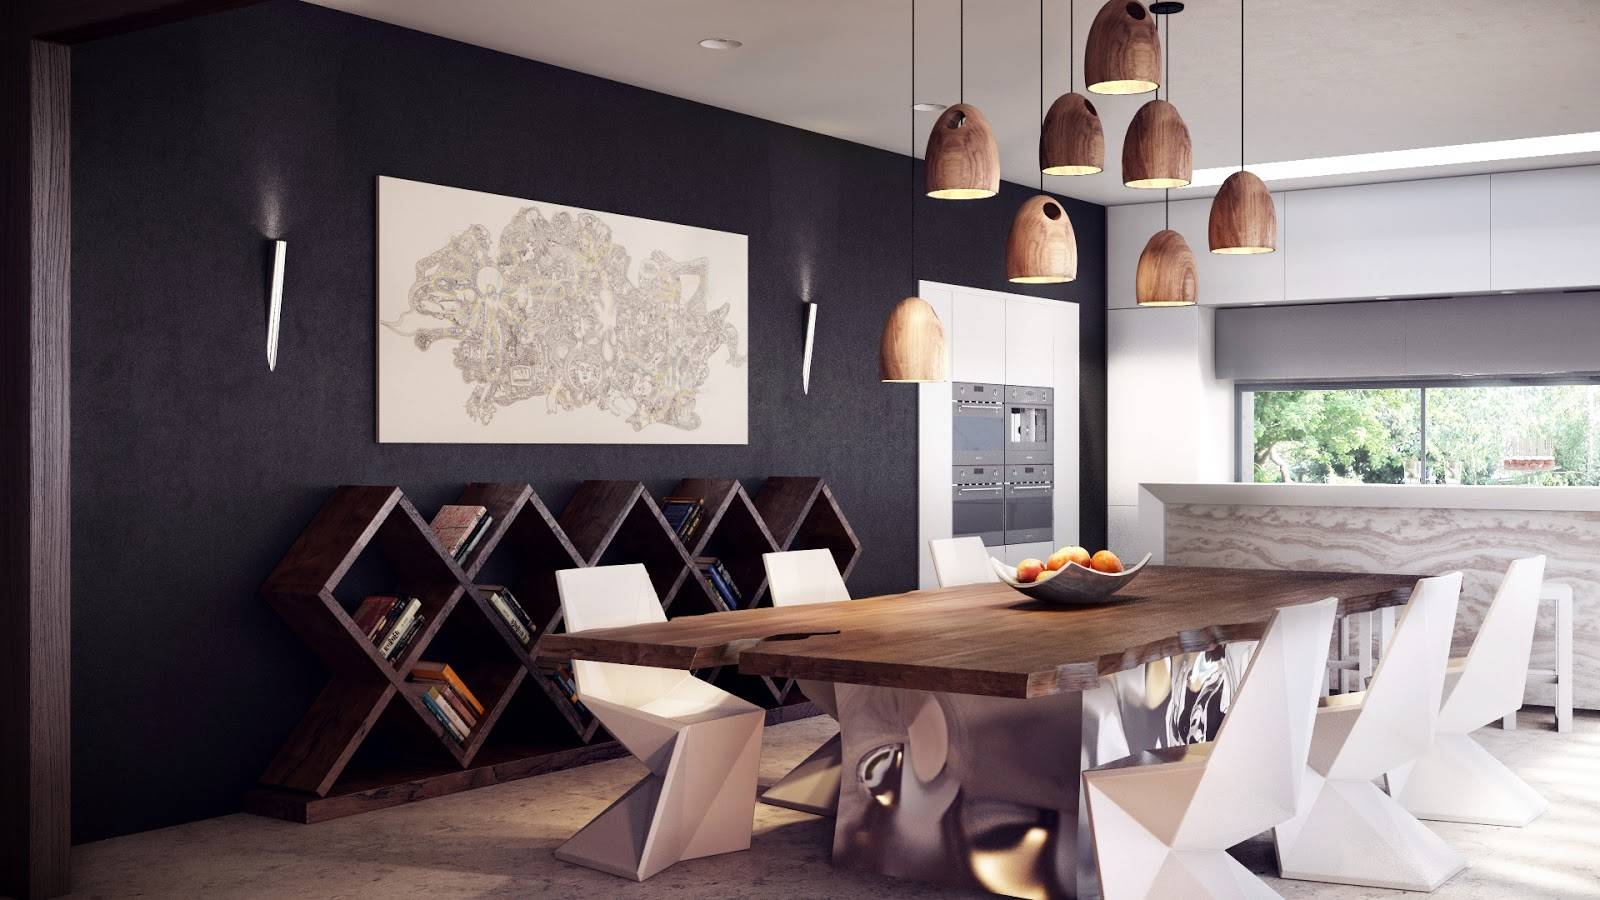 Dining Room : Contemporary Home Decor Wall Art Dining Room – Igf Usa With Regard To Newest Modern Wall Art For Dining Room (View 12 of 15)